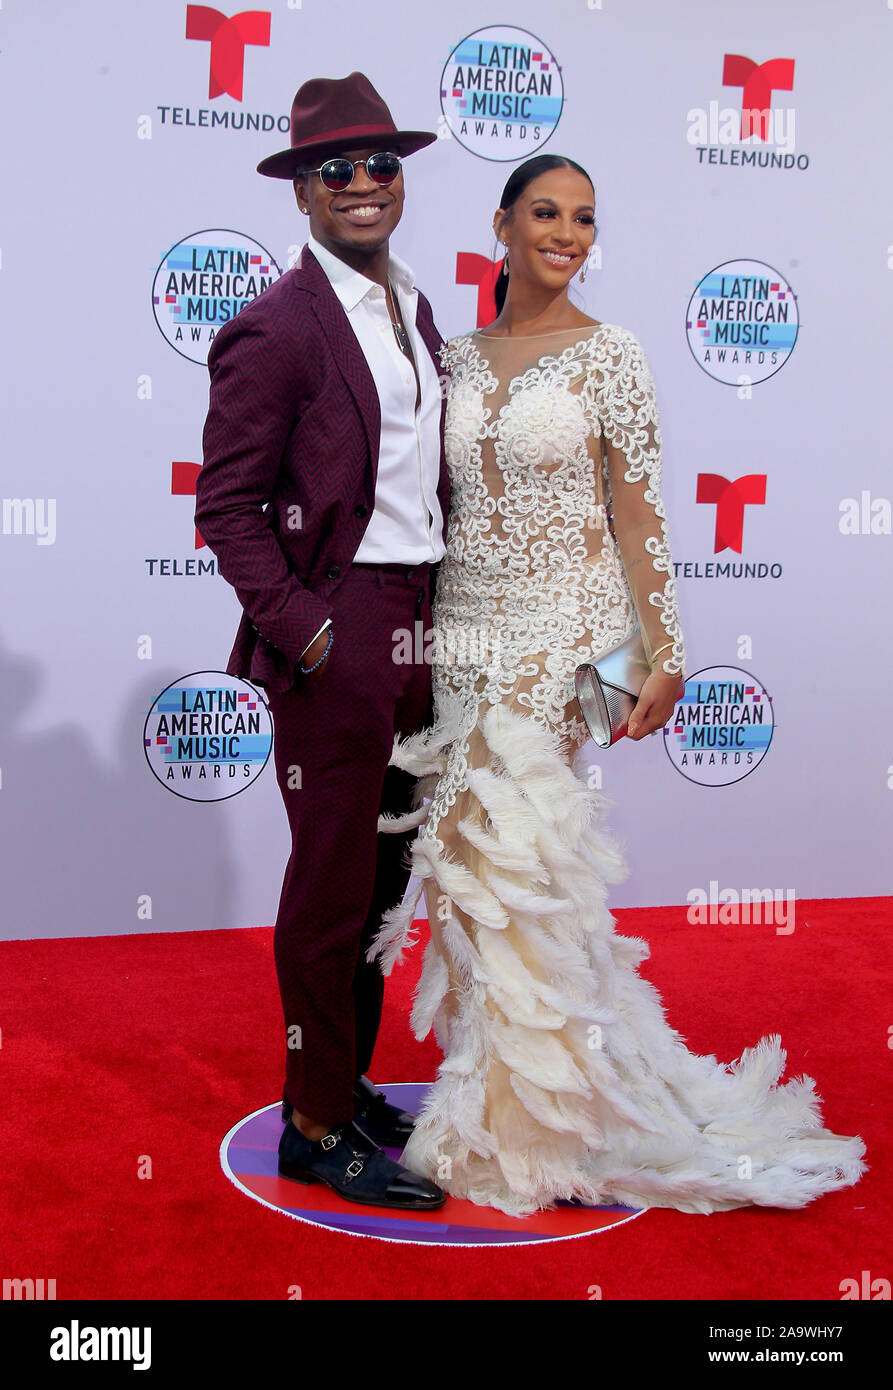 Latin American Music Awards 2019 held at the Dolby Theatre in Hollywood, California. Featuring: Ne-Yo, Crystal Renay Where: Los Angeles, California, United States When: 17 Oct 2019 Credit: Adriana M. Barraza/WENN.com Stock Photo